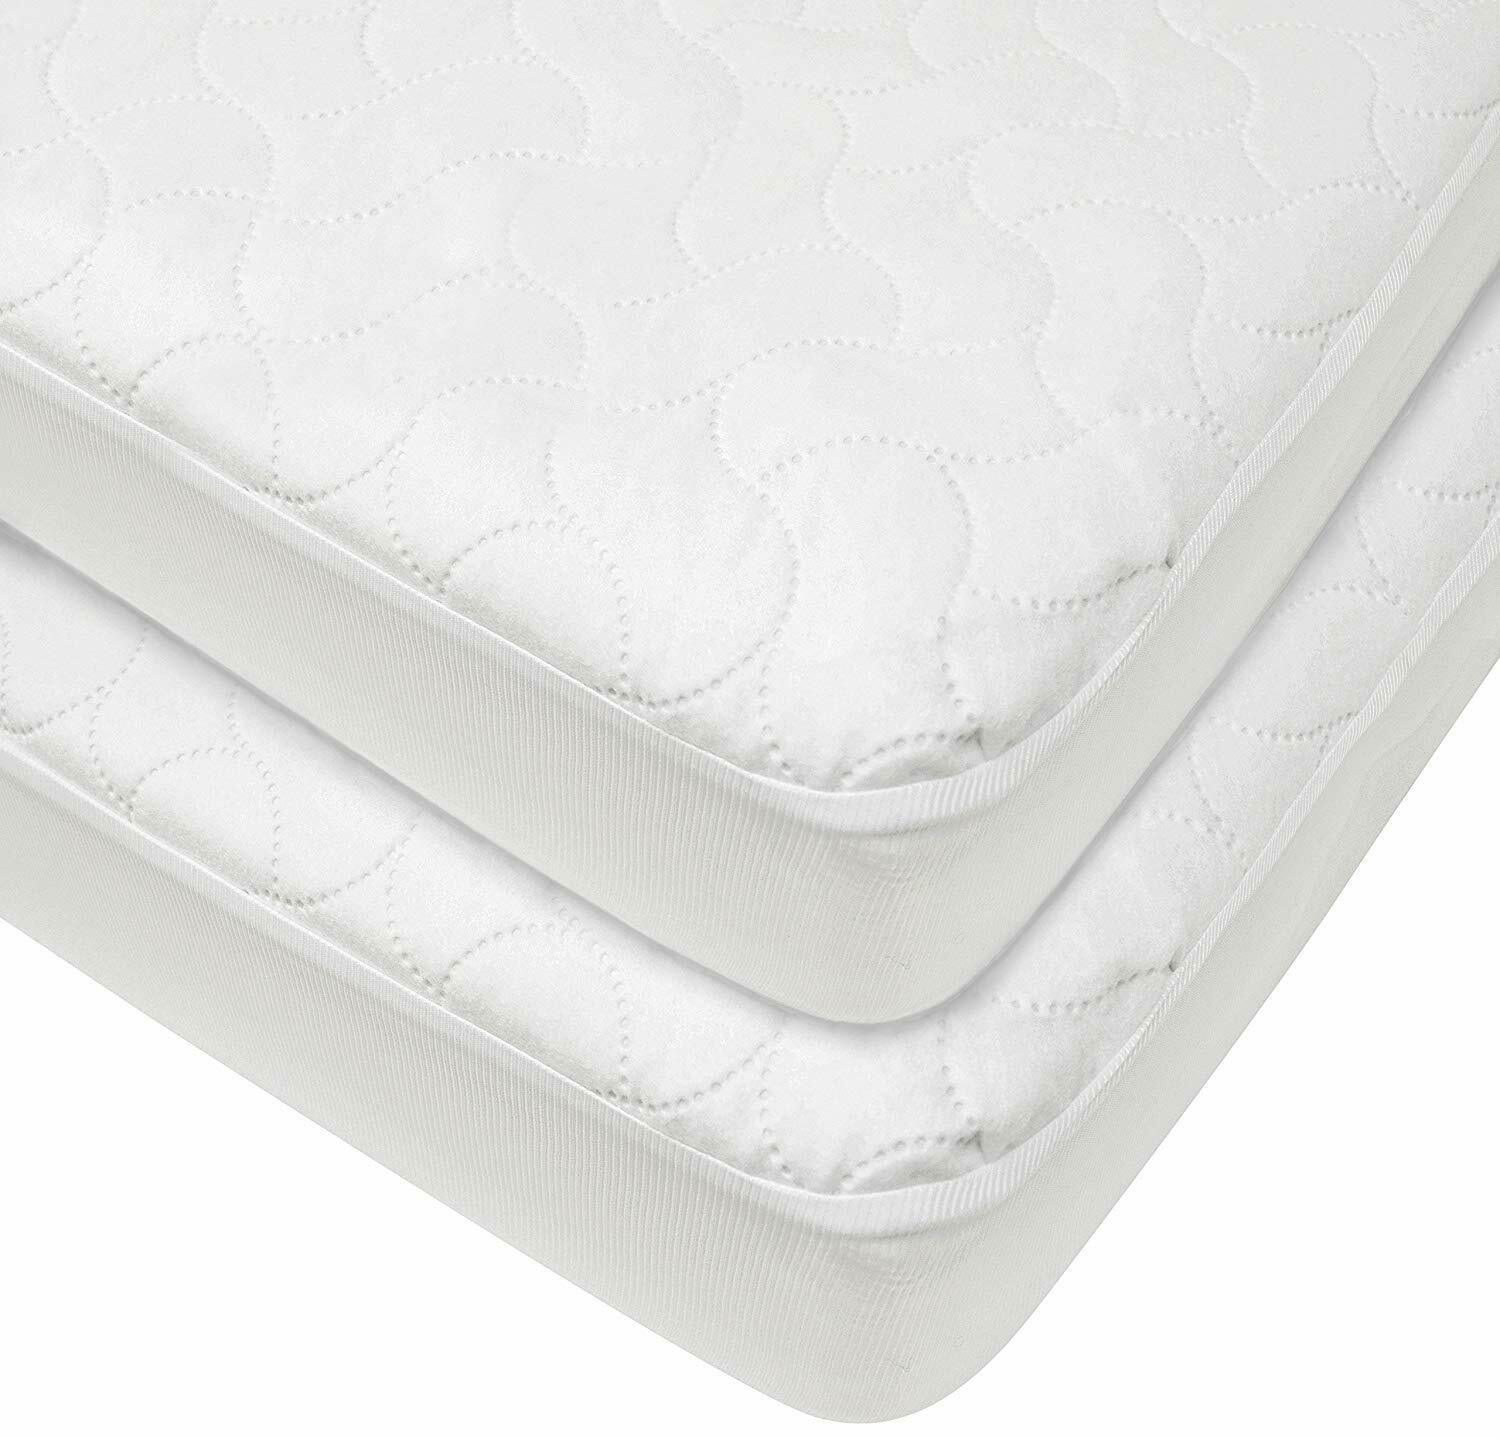 American Baby Company 2 Pack Waterproof Fitted Quilted Crib